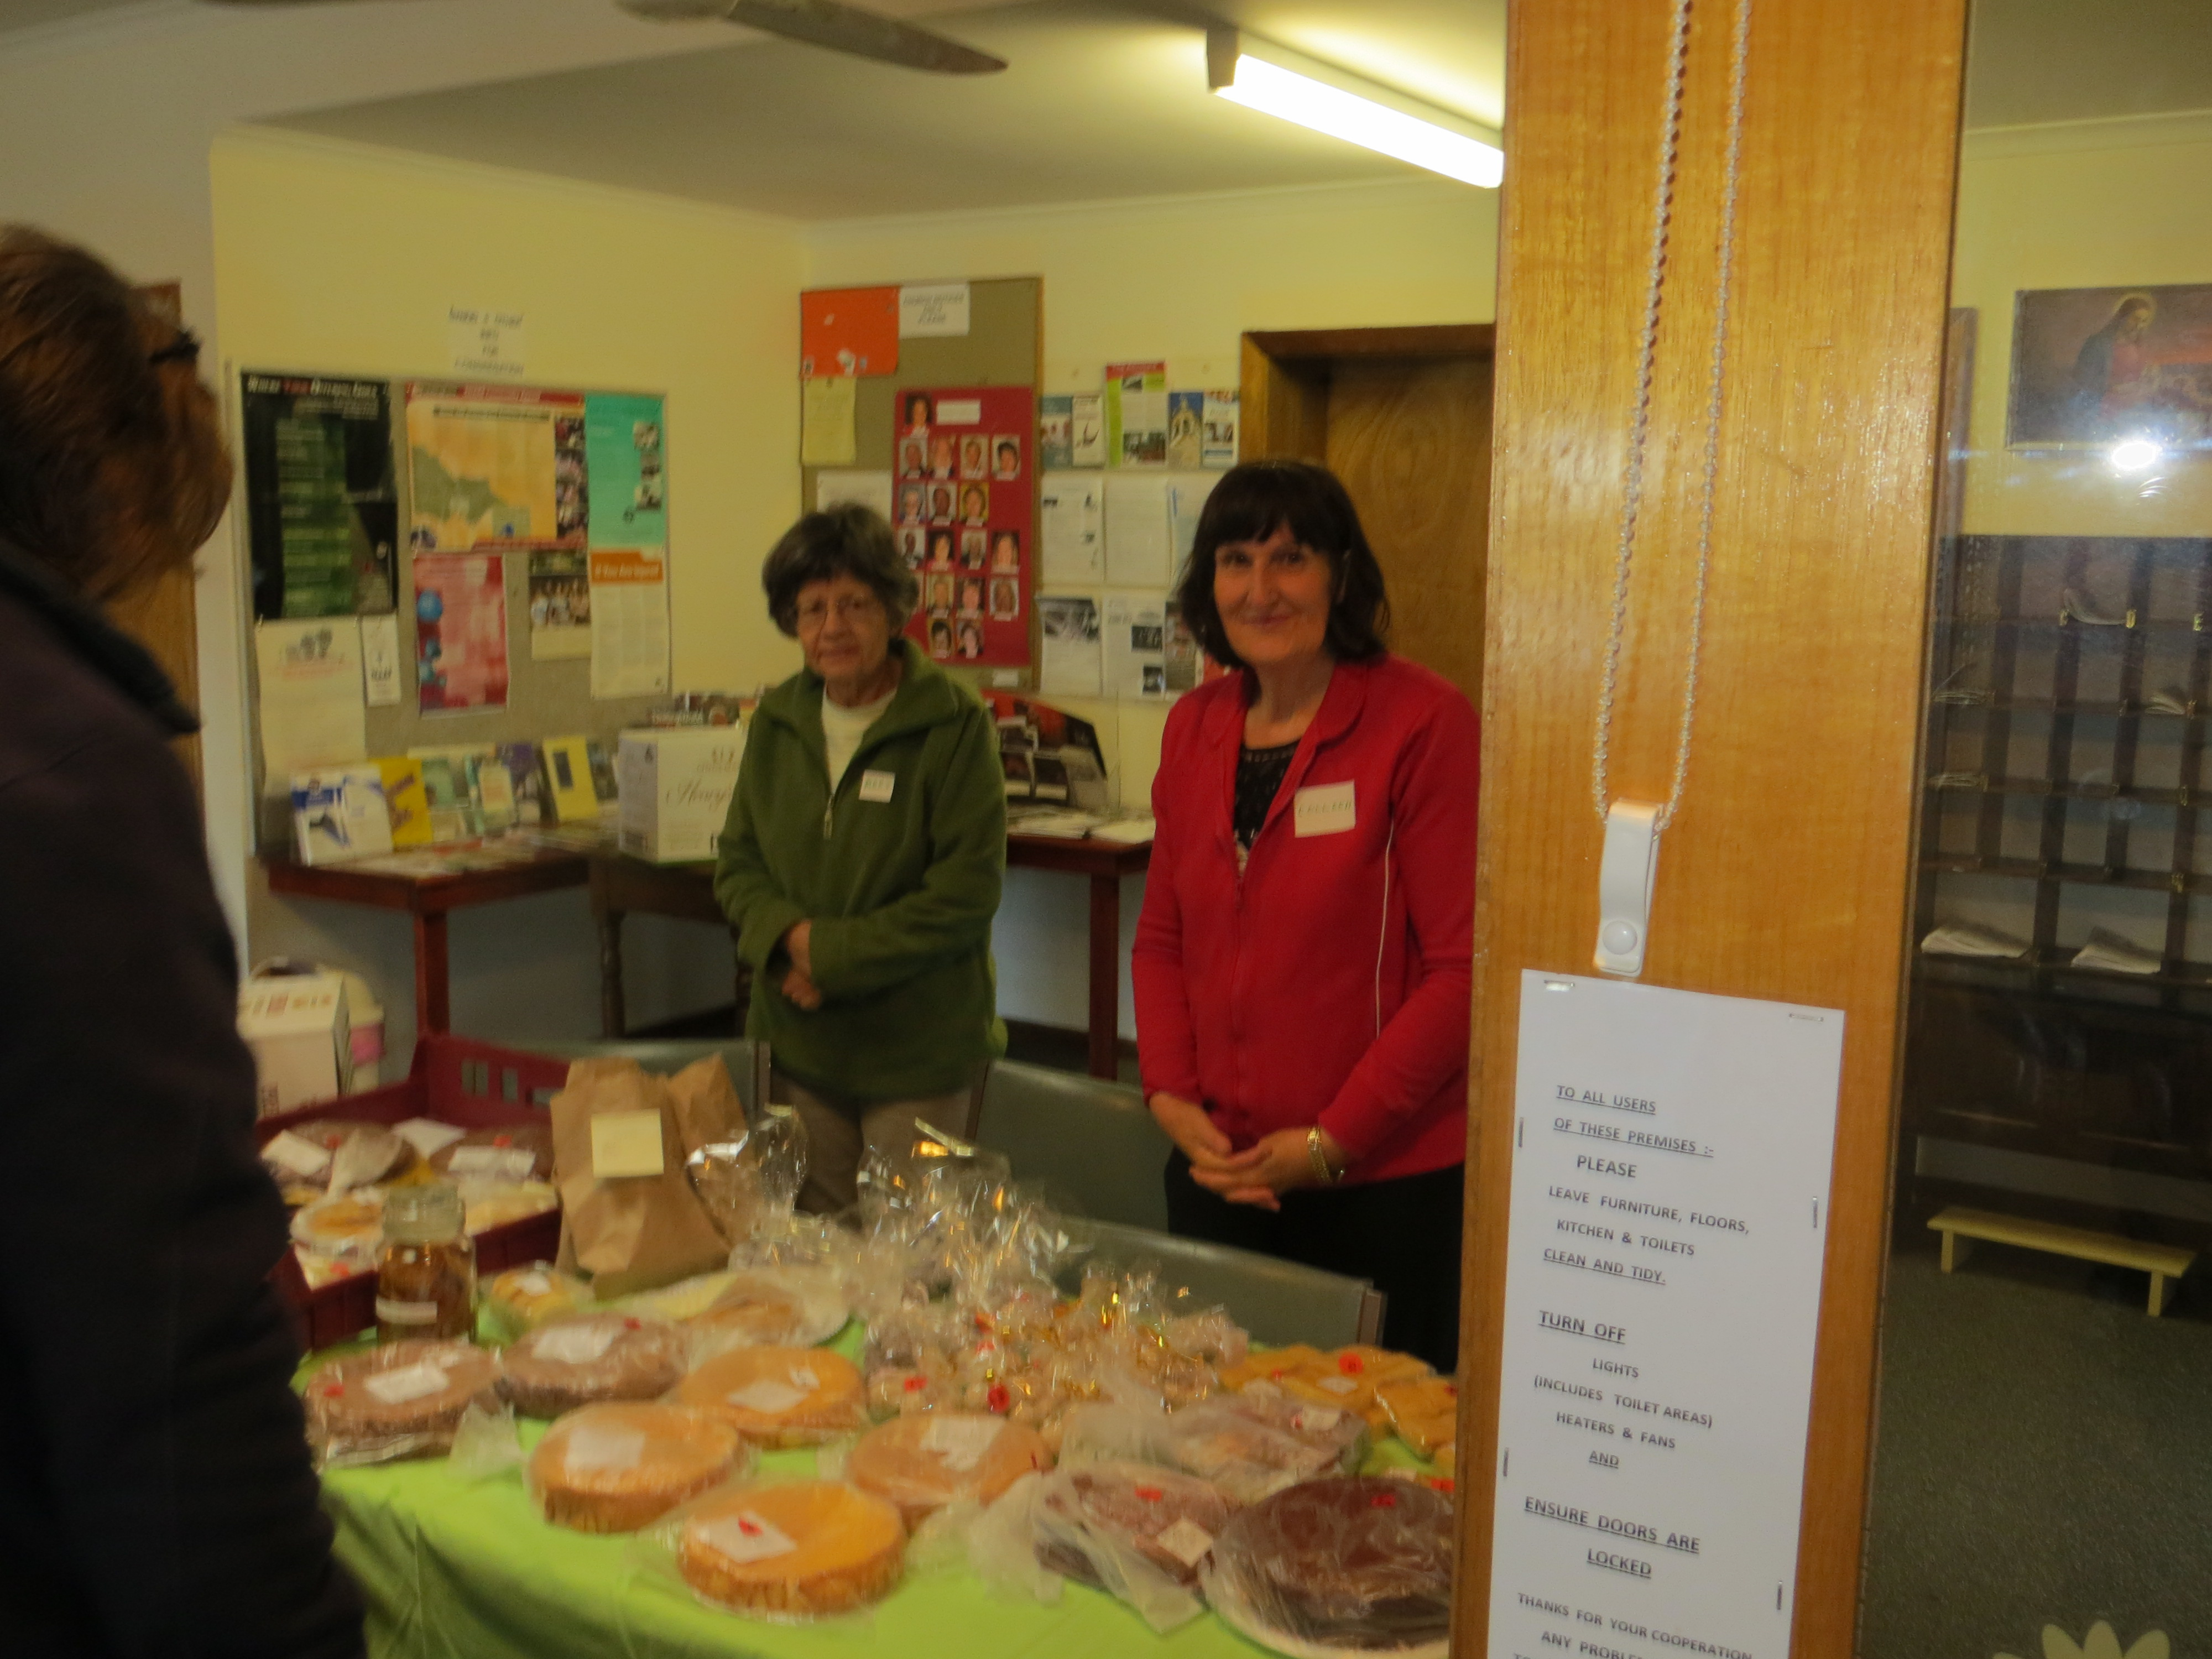 Cake stall - Mary & Colleen